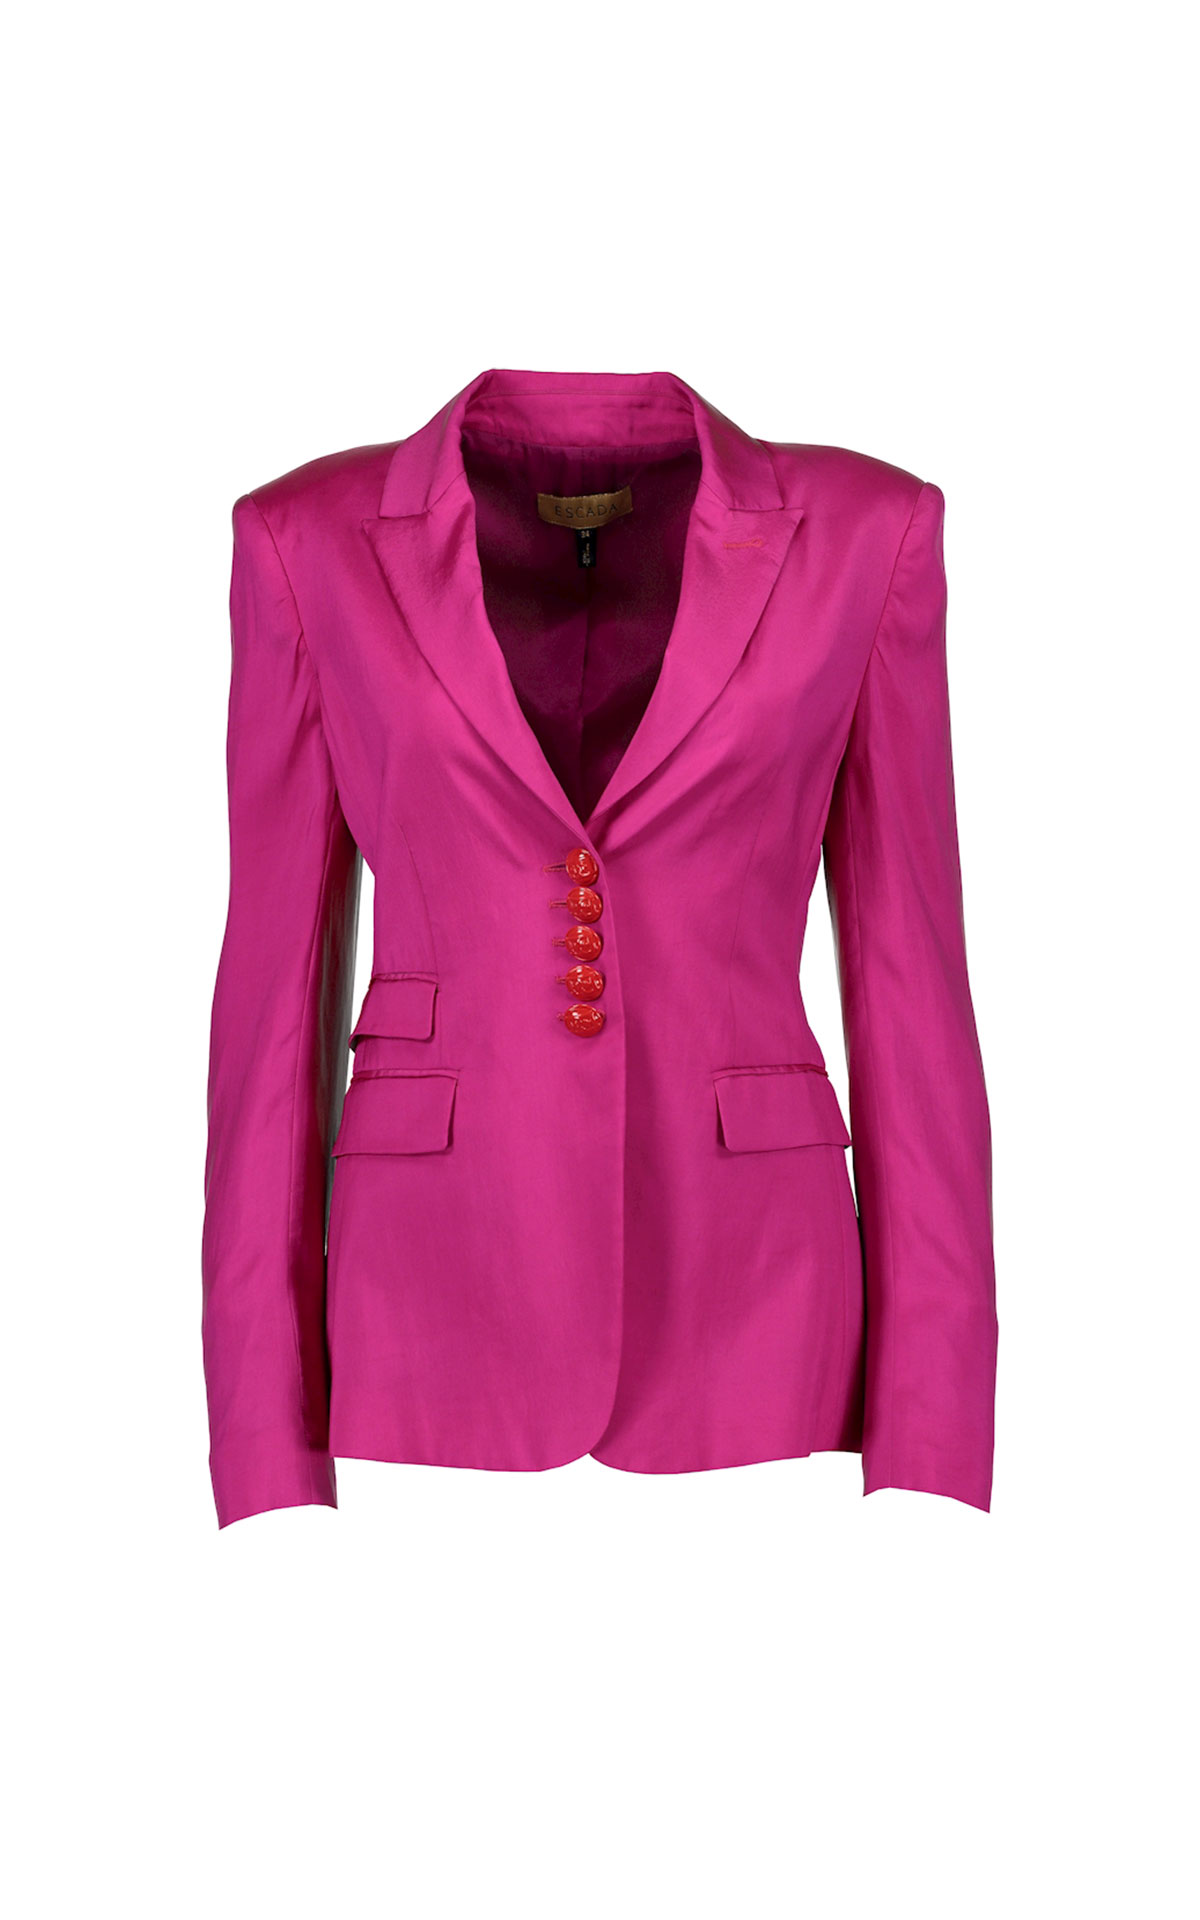 Escada Pink jacket from Bicester Village